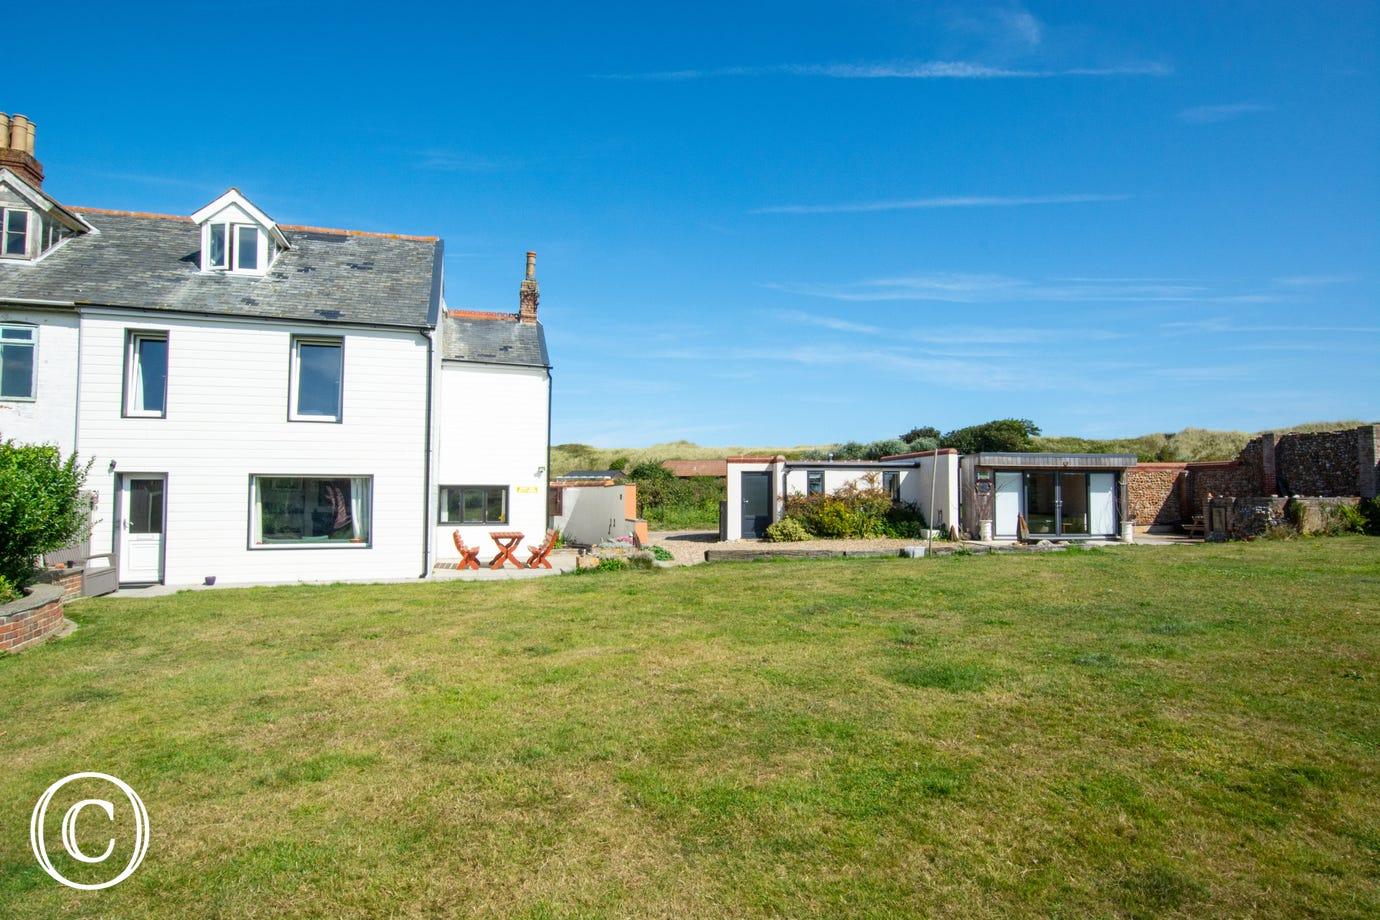 Situated in an ideal location for a seaside holiday, being just a few minutes from the beach.